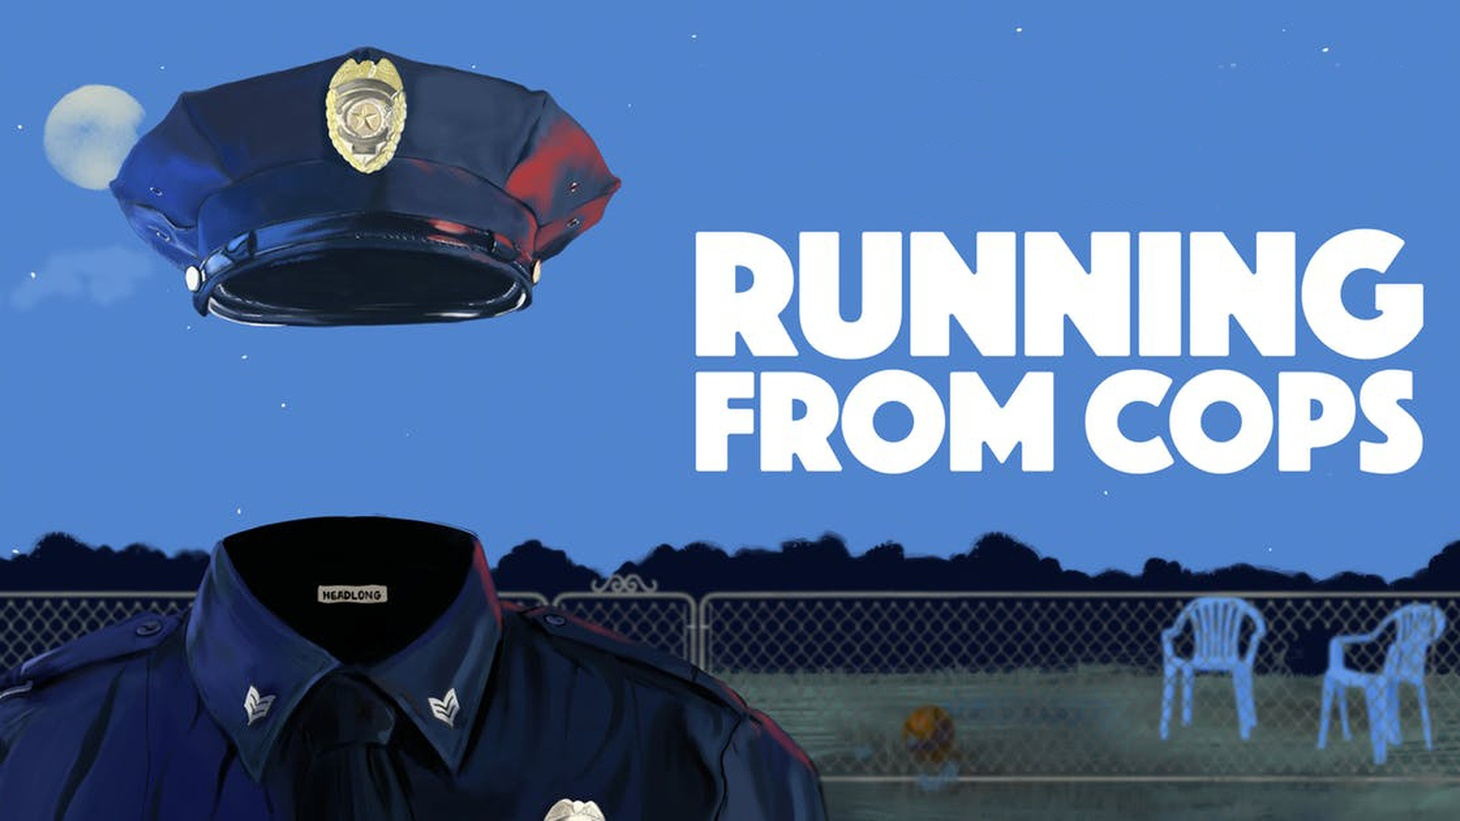 As a follow-up to his podcasts about exercise guru Richard Simmons and then Y2K, Dan Taberski set out to investigate the darker aspects of the long-running show 'Cops.'